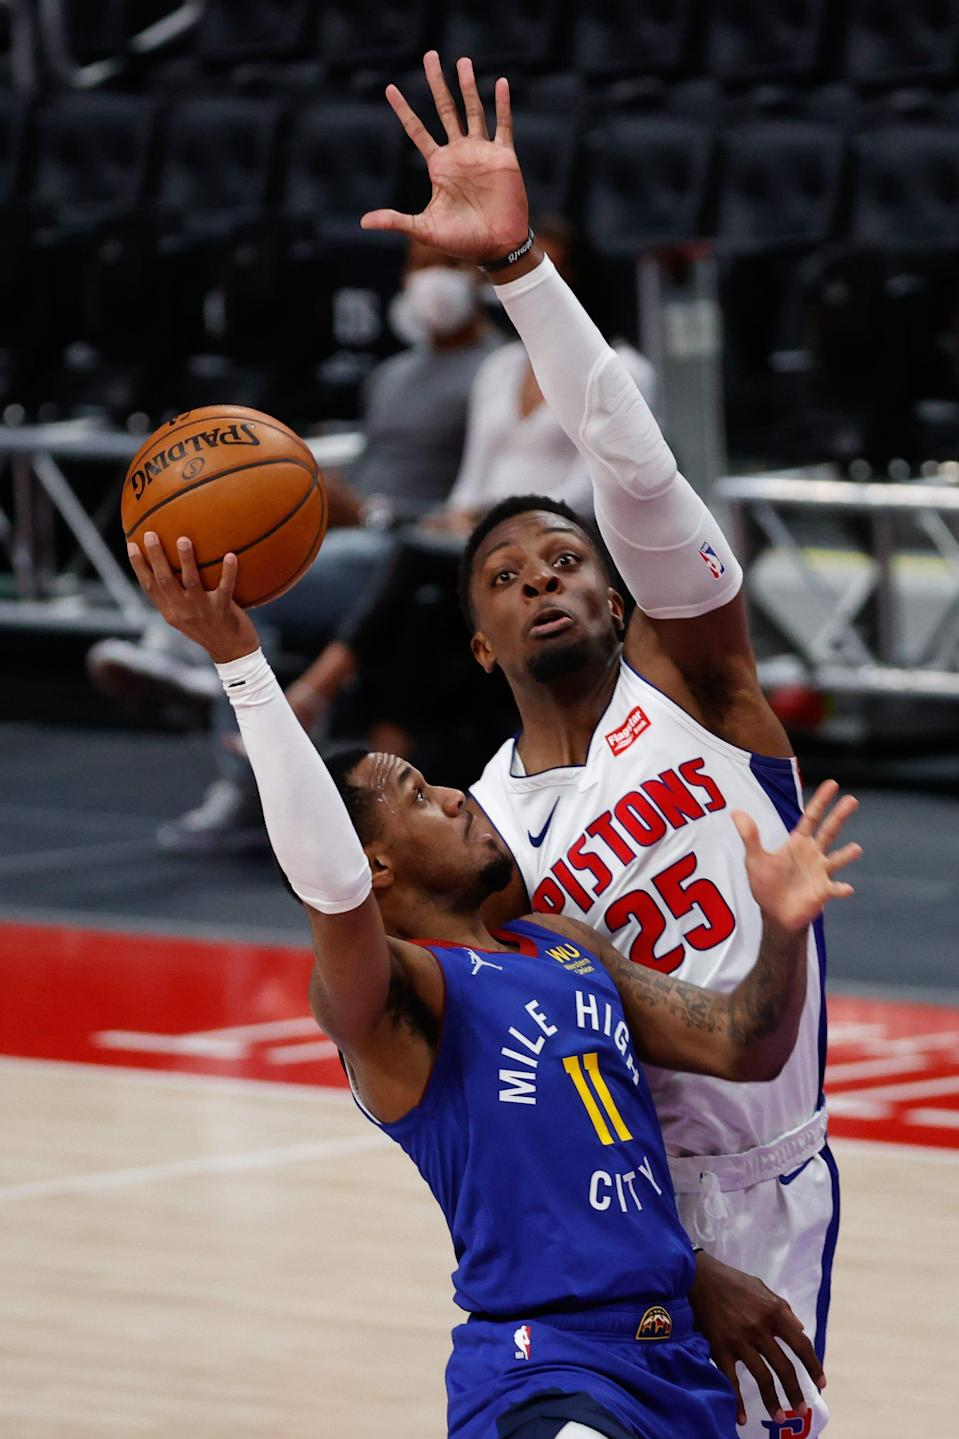 Denver Nuggets guard Monte Morris shoots on Detroit Pistons forward Tyler Cook in the second half at Little Caesars Arena, May 14, 2021.